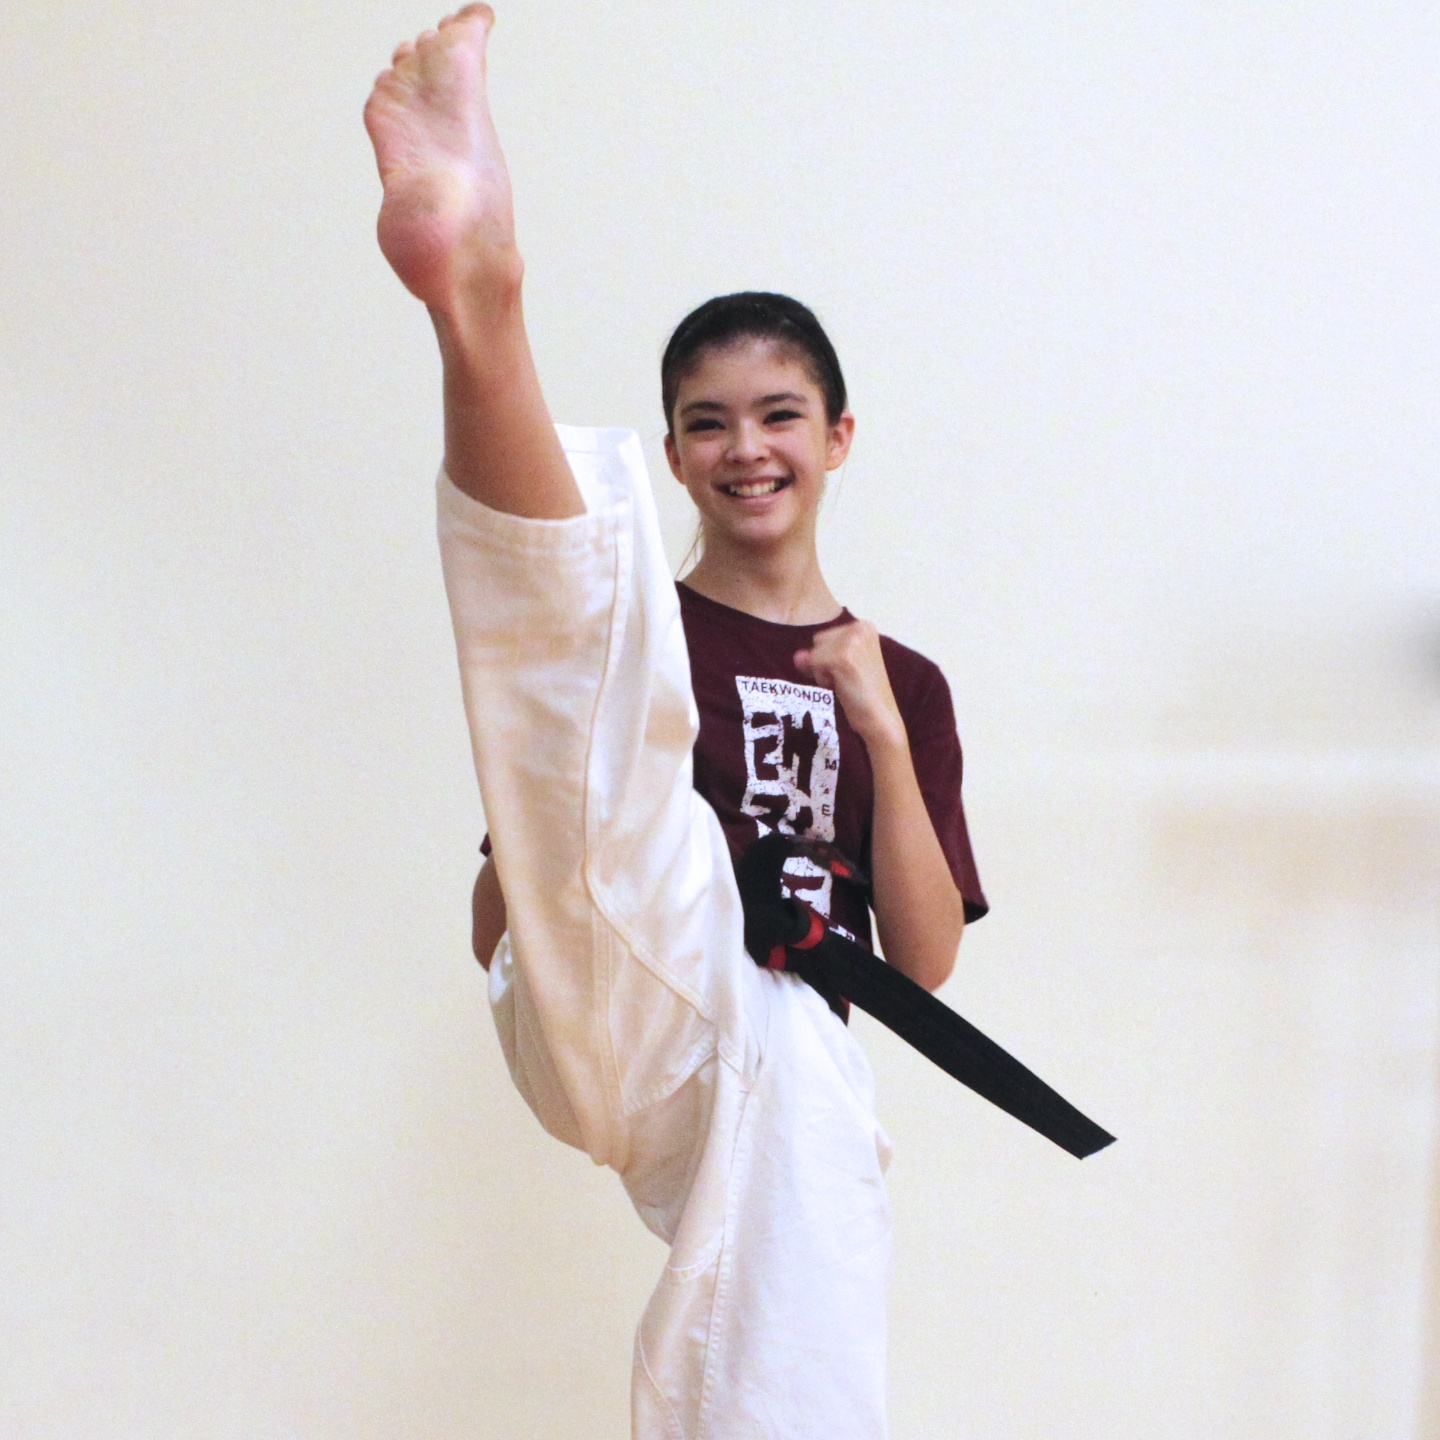 Mikayla's sister Briana is also training with us here in our Southlake martial arts center.